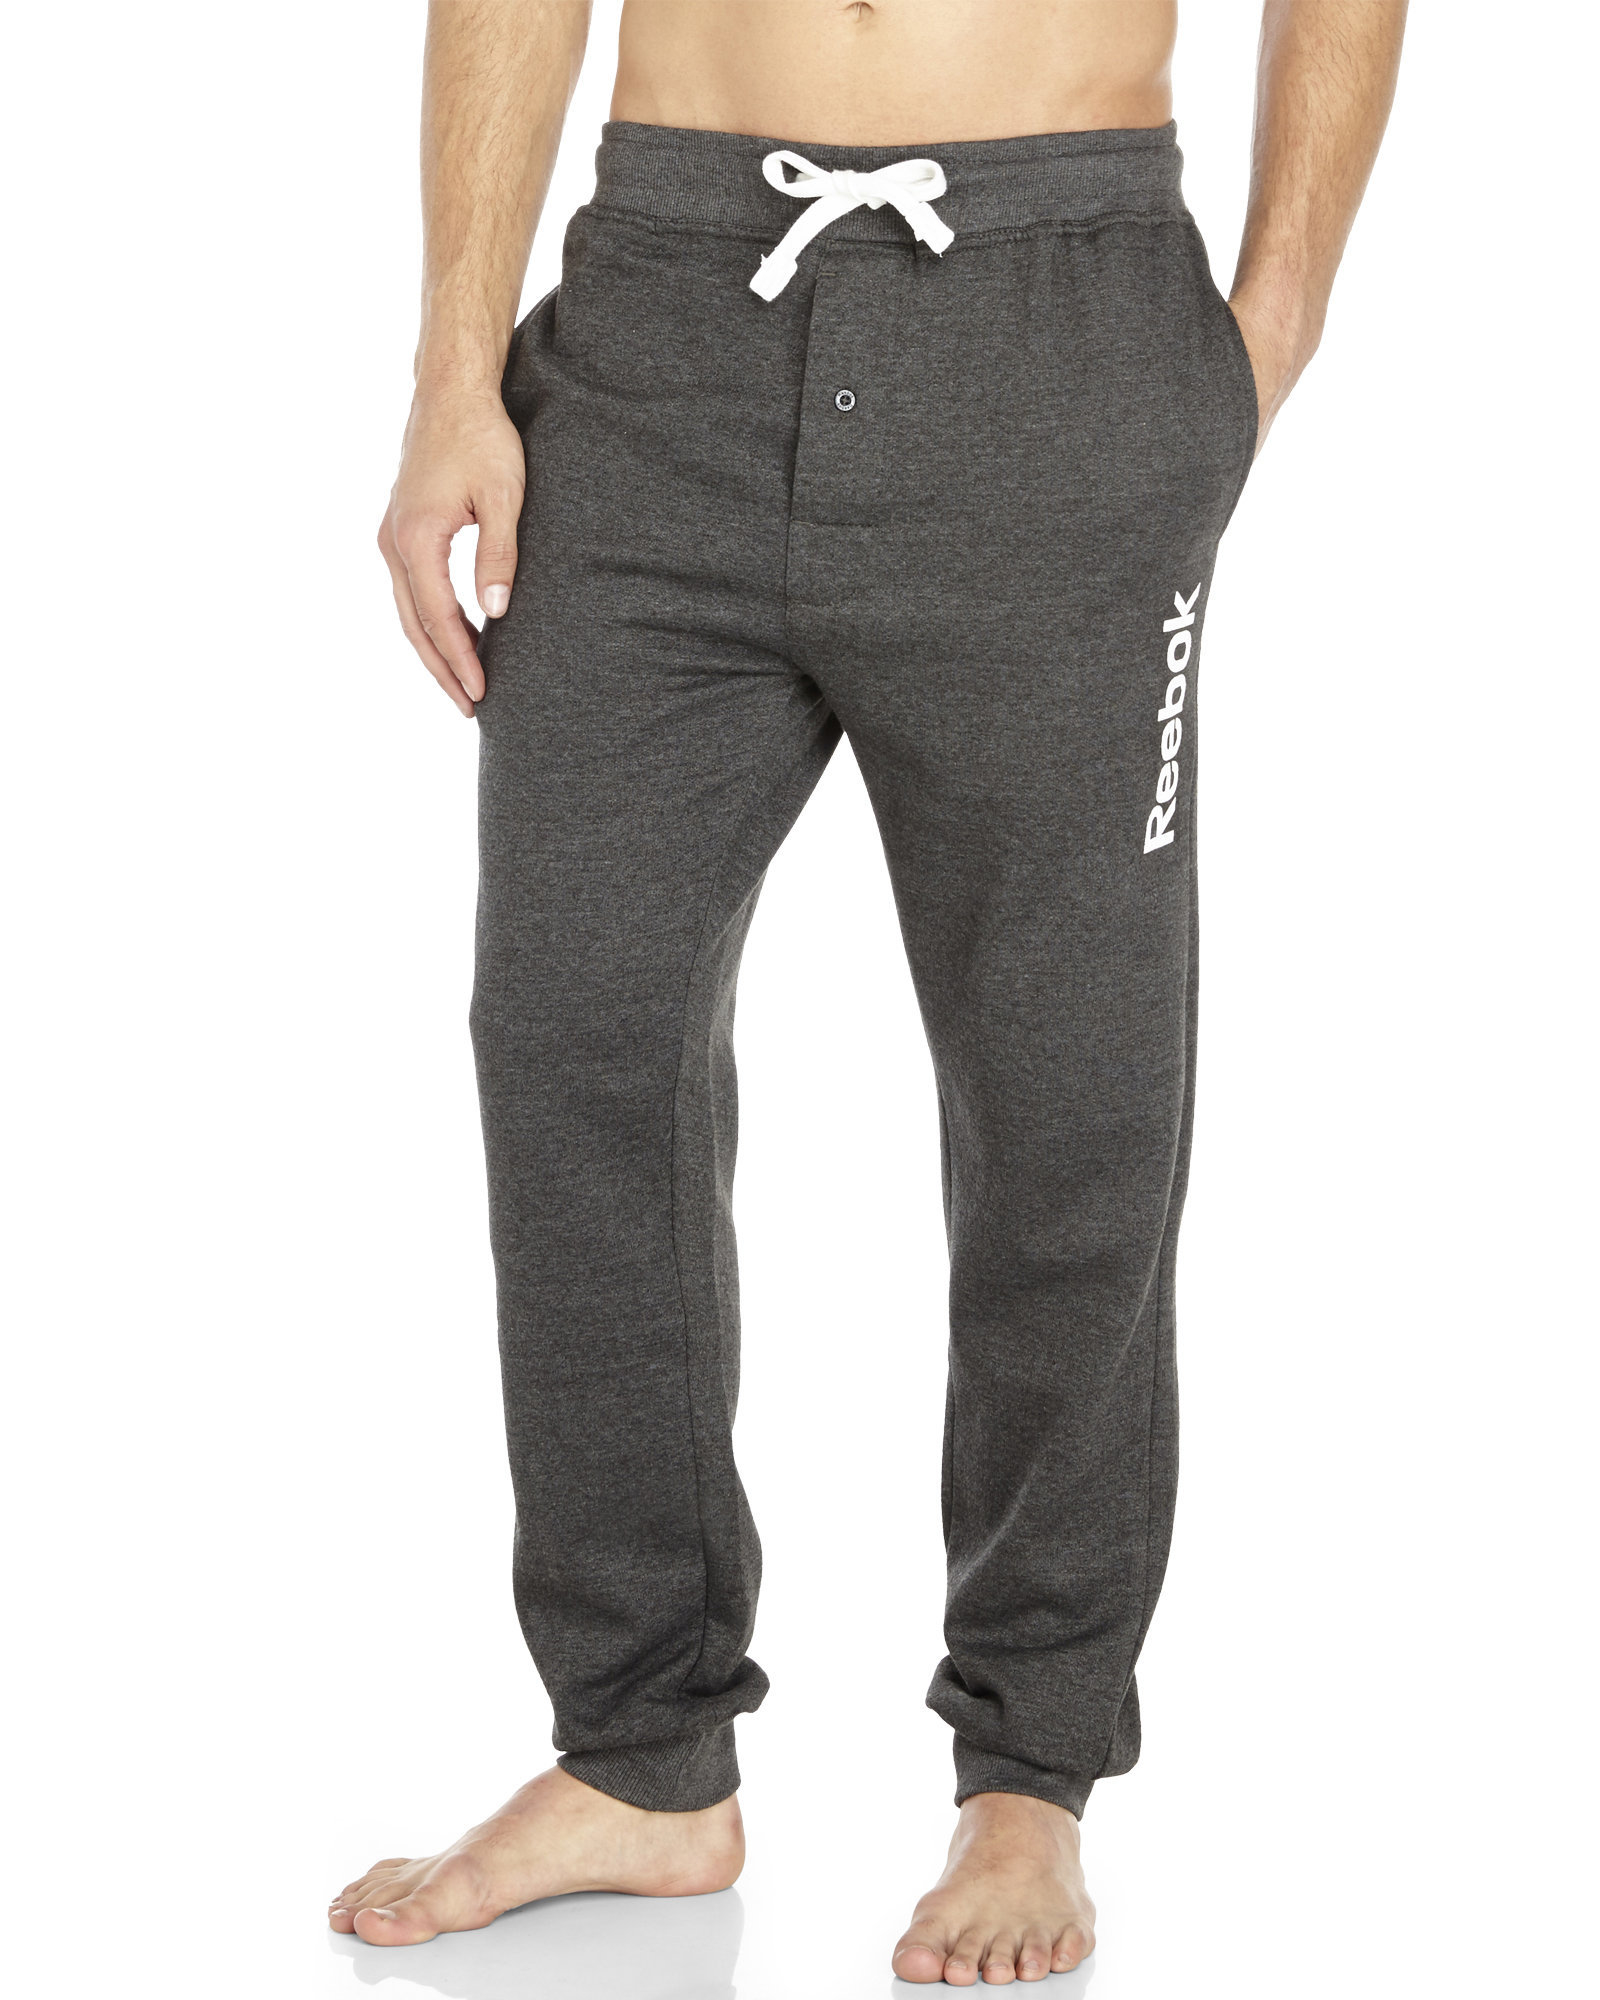 Lyst - Reebok Knit Drawstring Lounge Pants in Gray for Men 9923307e36bc